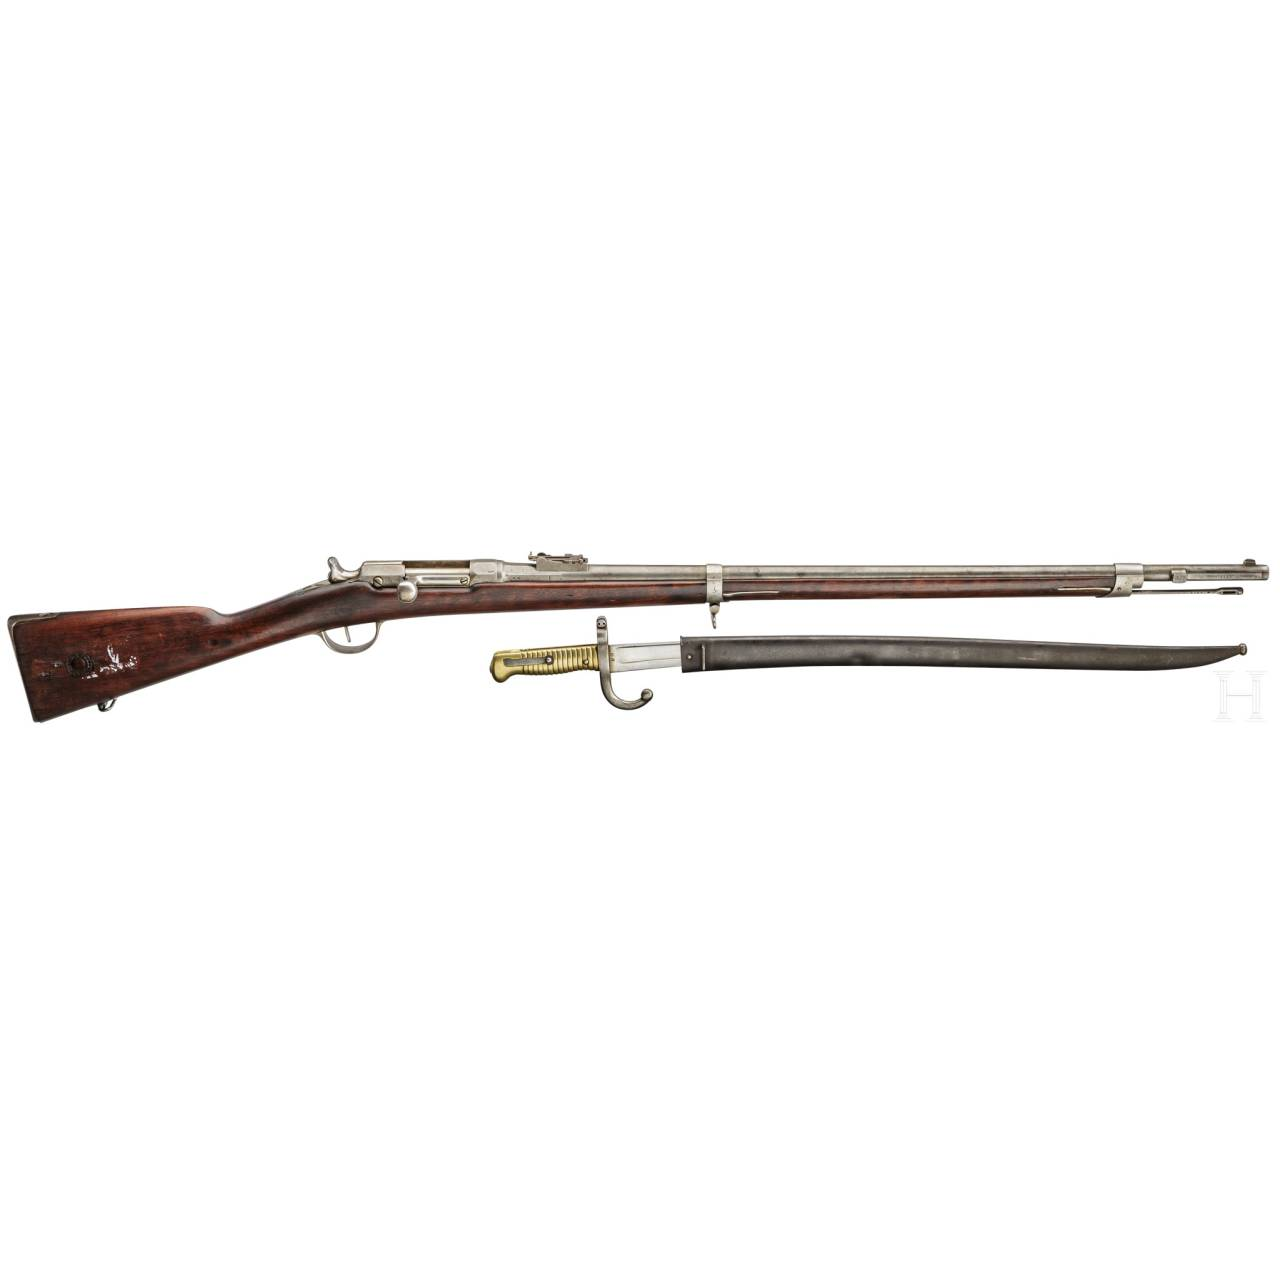 An Infantry Rifle Chassepot M 1866